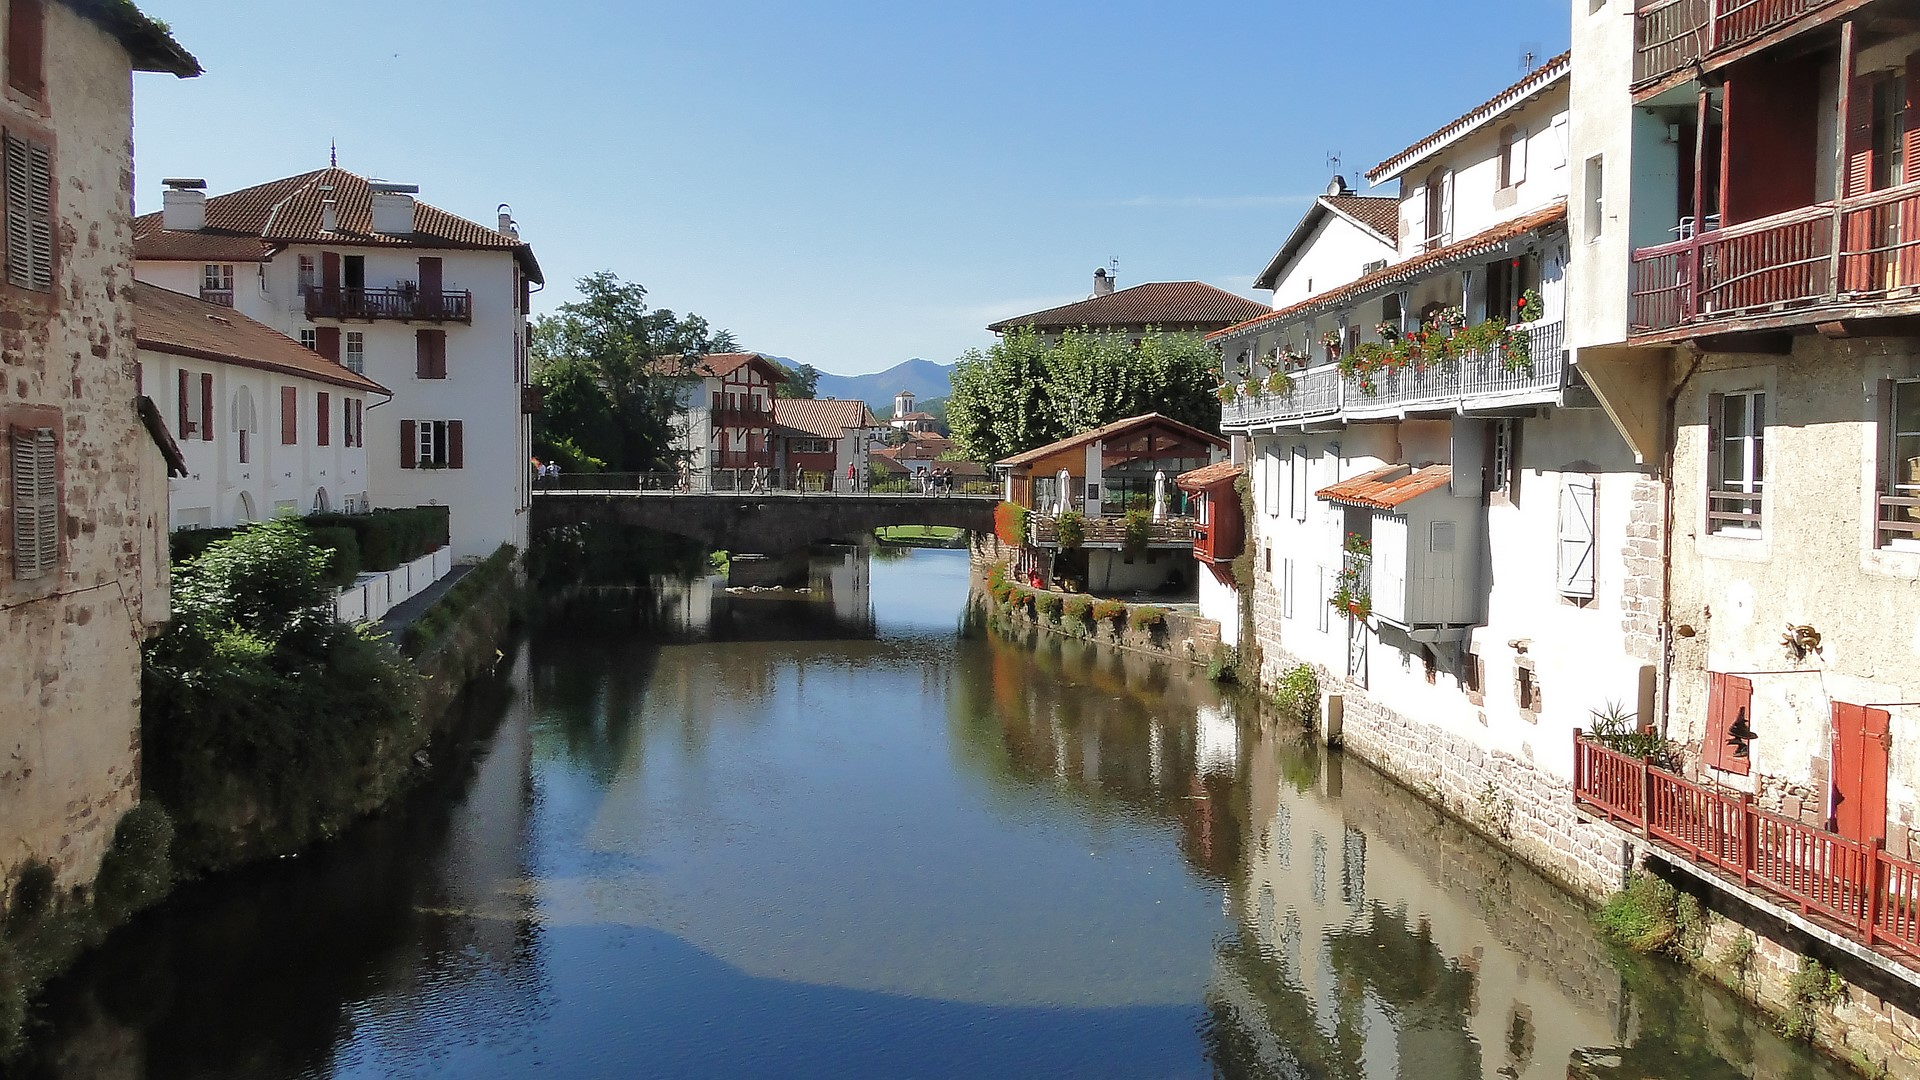 Saint jean pied de port au pays basque - Places to stay in st jean pied de port ...